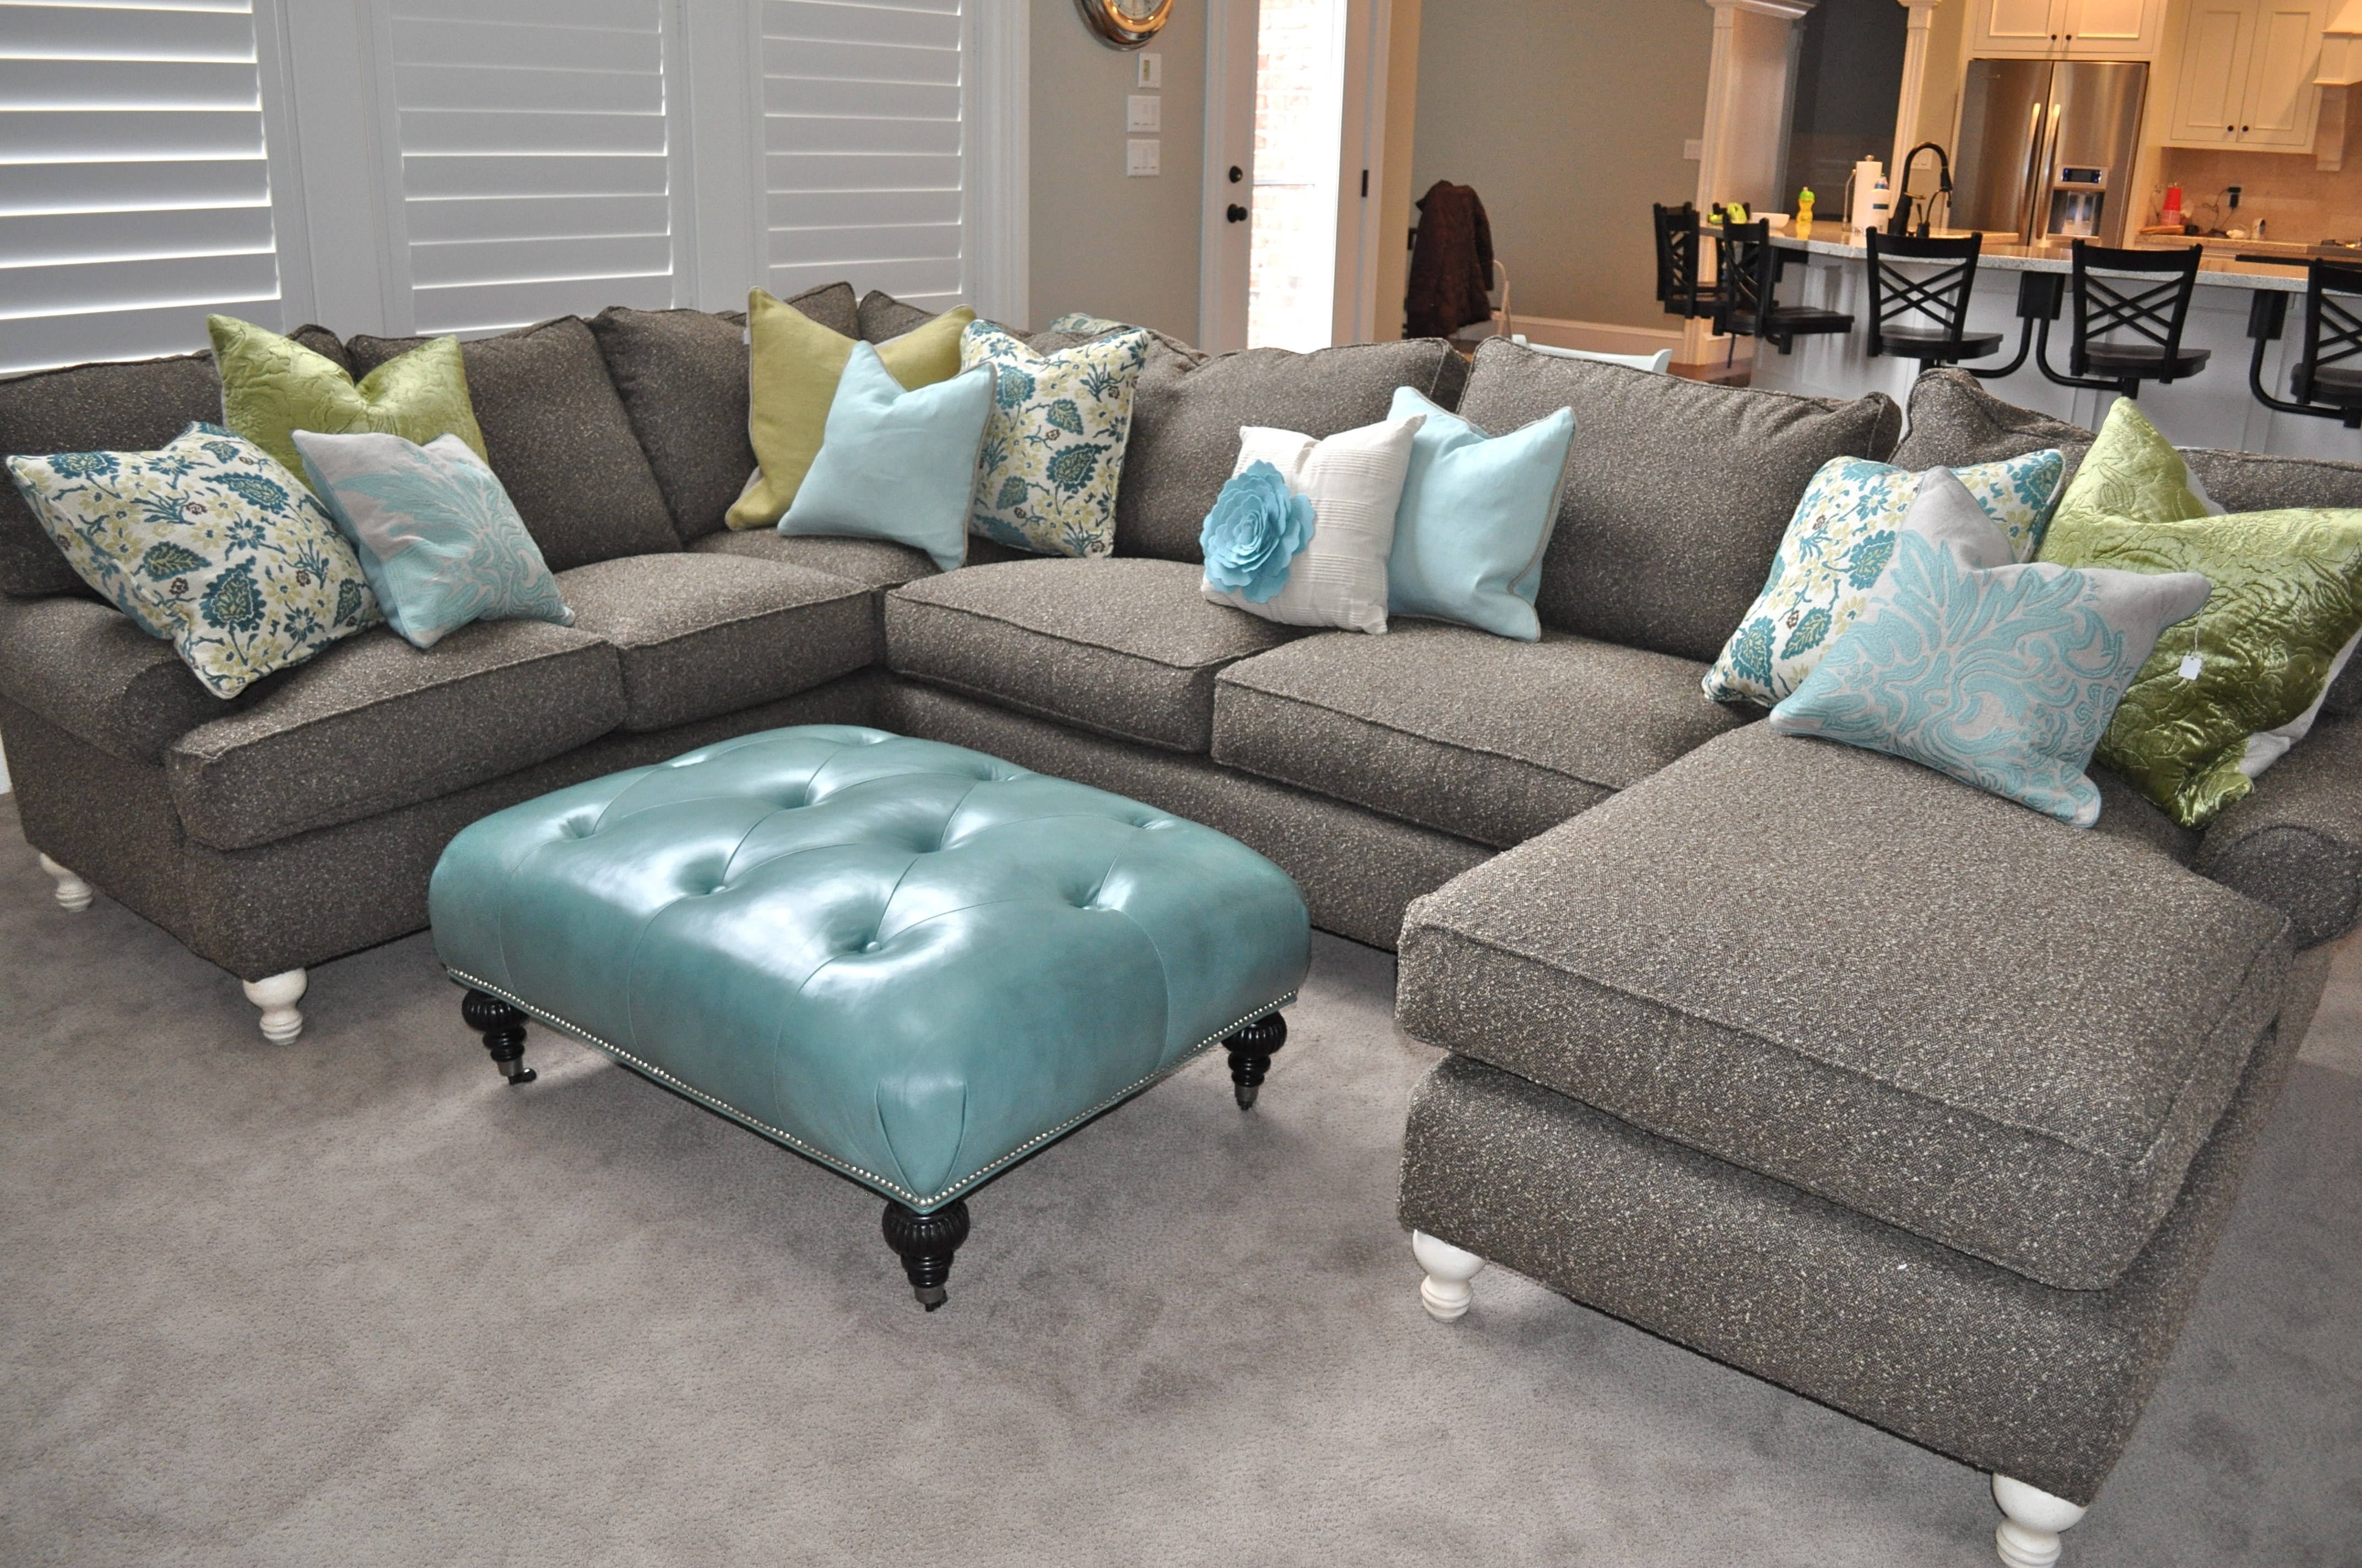 Preferred Amusing Sectional Sofa With Chaise And Ottoman 81 On Charcoal Gray In Gray Sectional Sofas With Chaise (View 11 of 15)